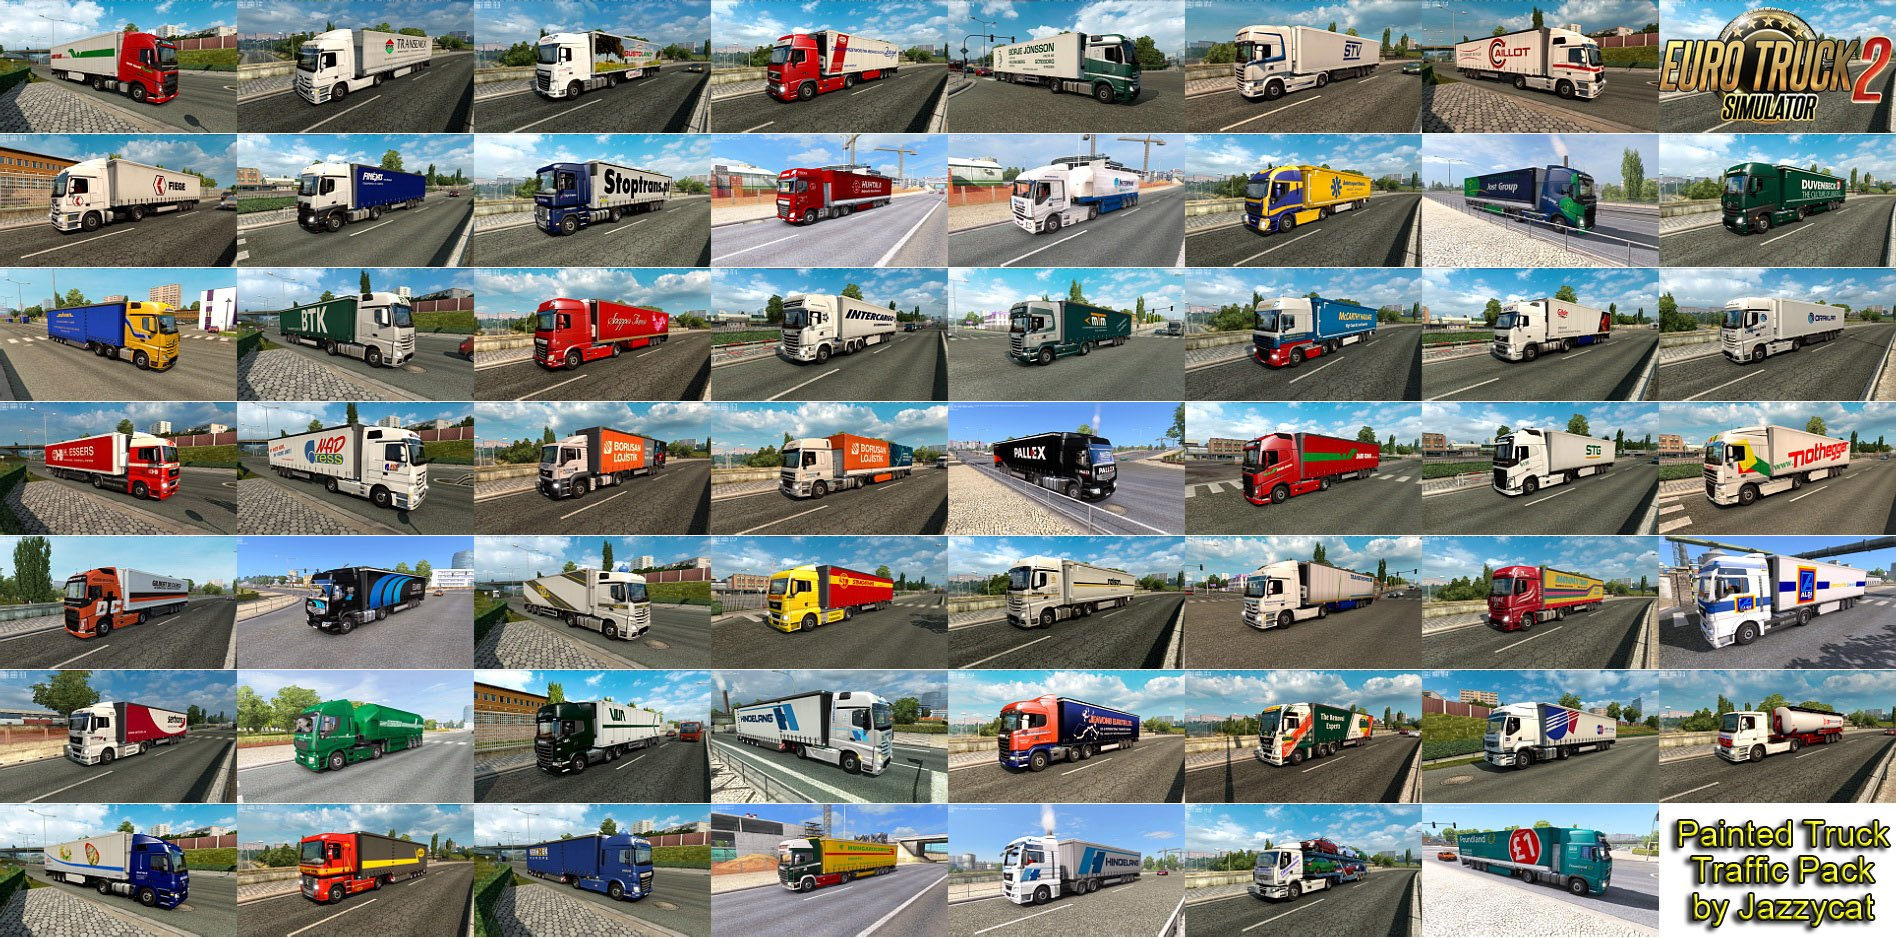 Fix for Painted Truck Traffic Pack v6.2 by Jazzycat